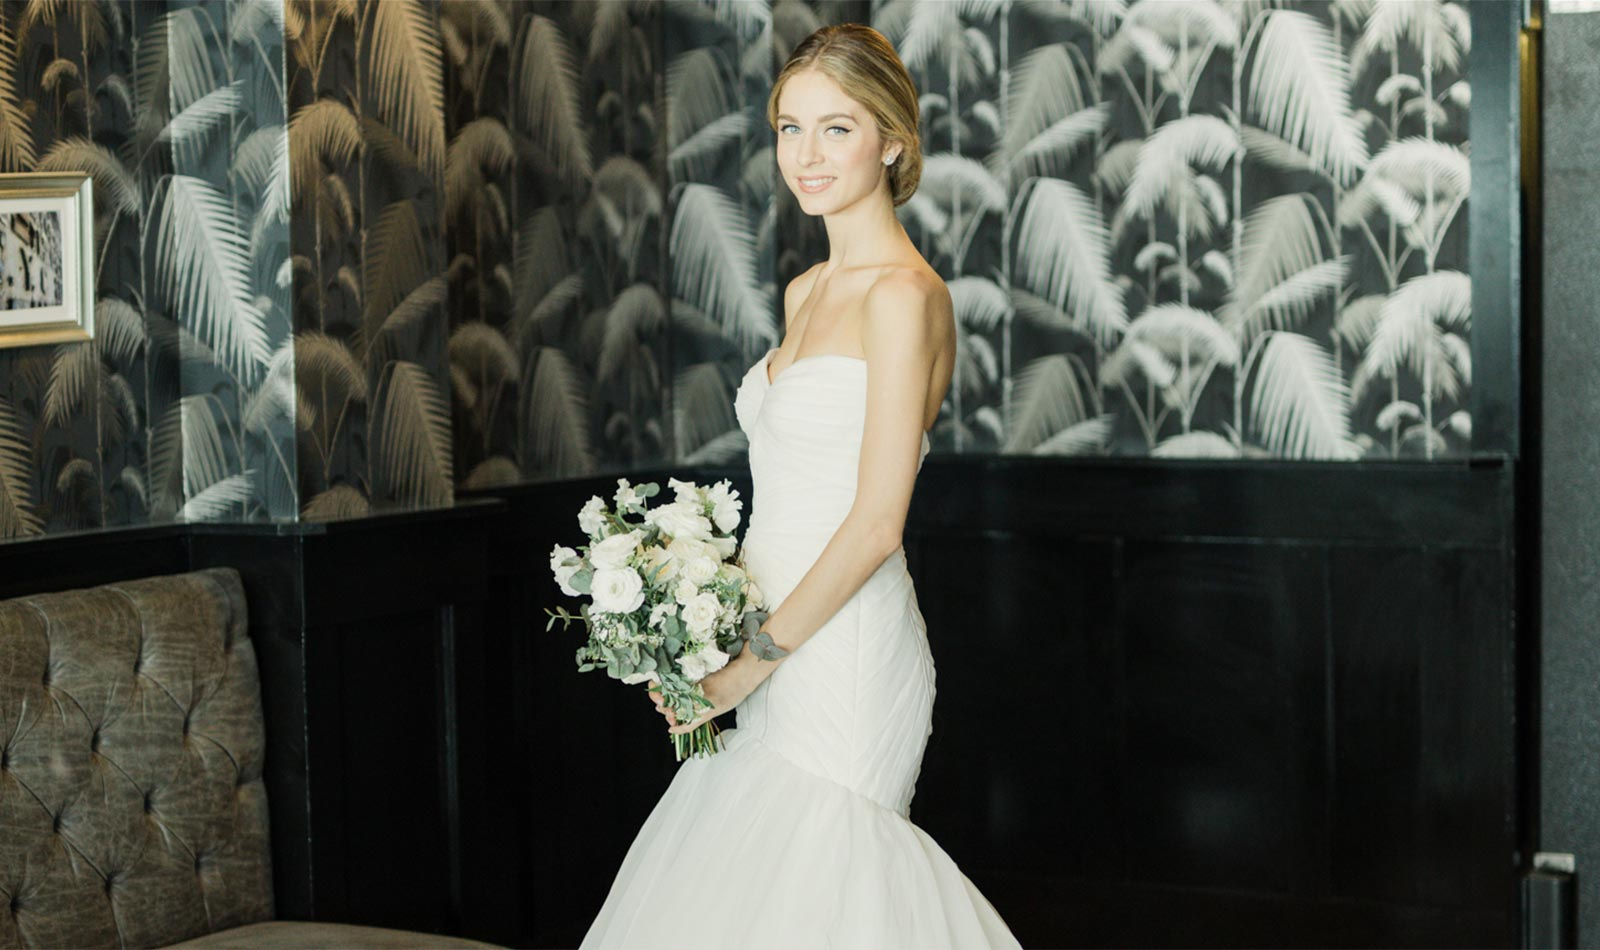 Smiling bride in white Zac Posen wedding gown holder floral bouquet